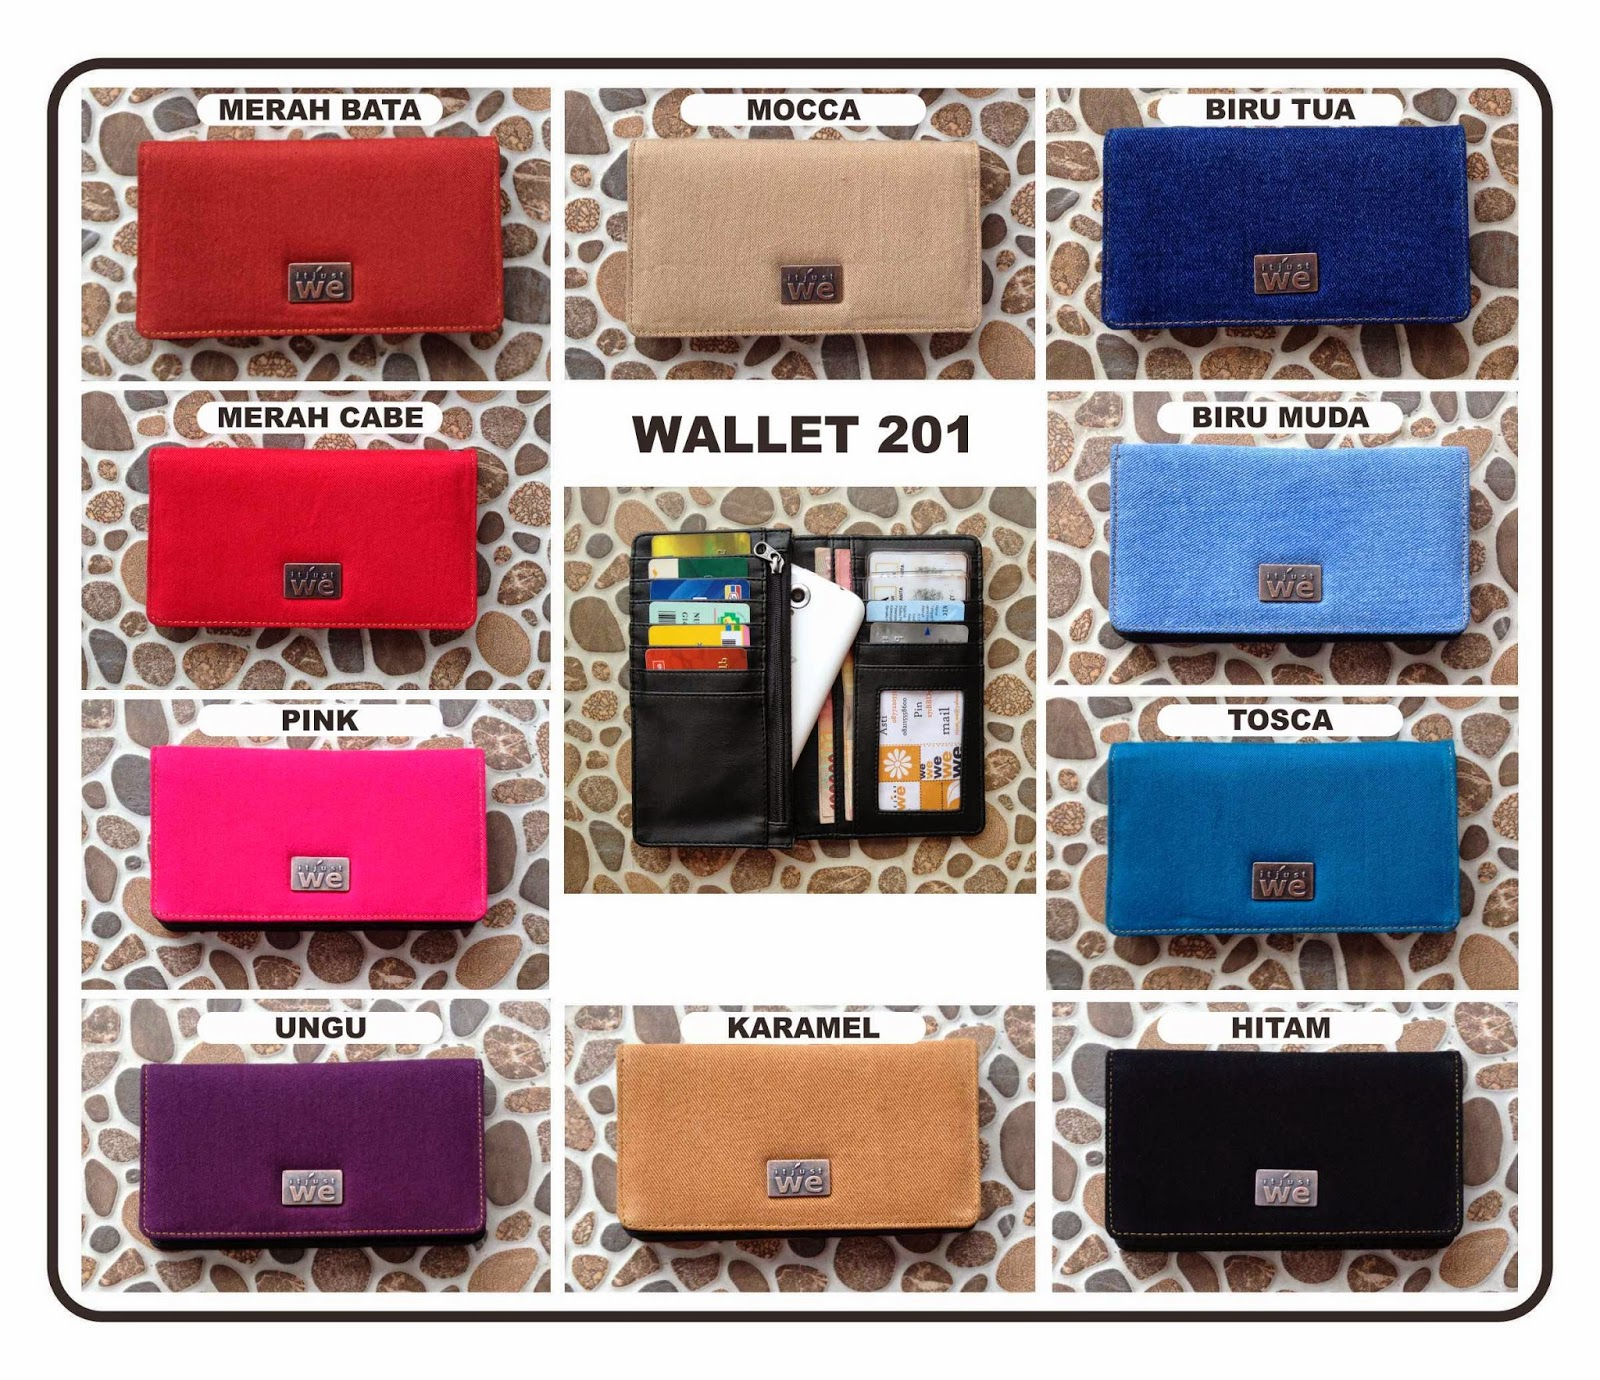 dompet jeans terbaru it just we 2015 wallet 201